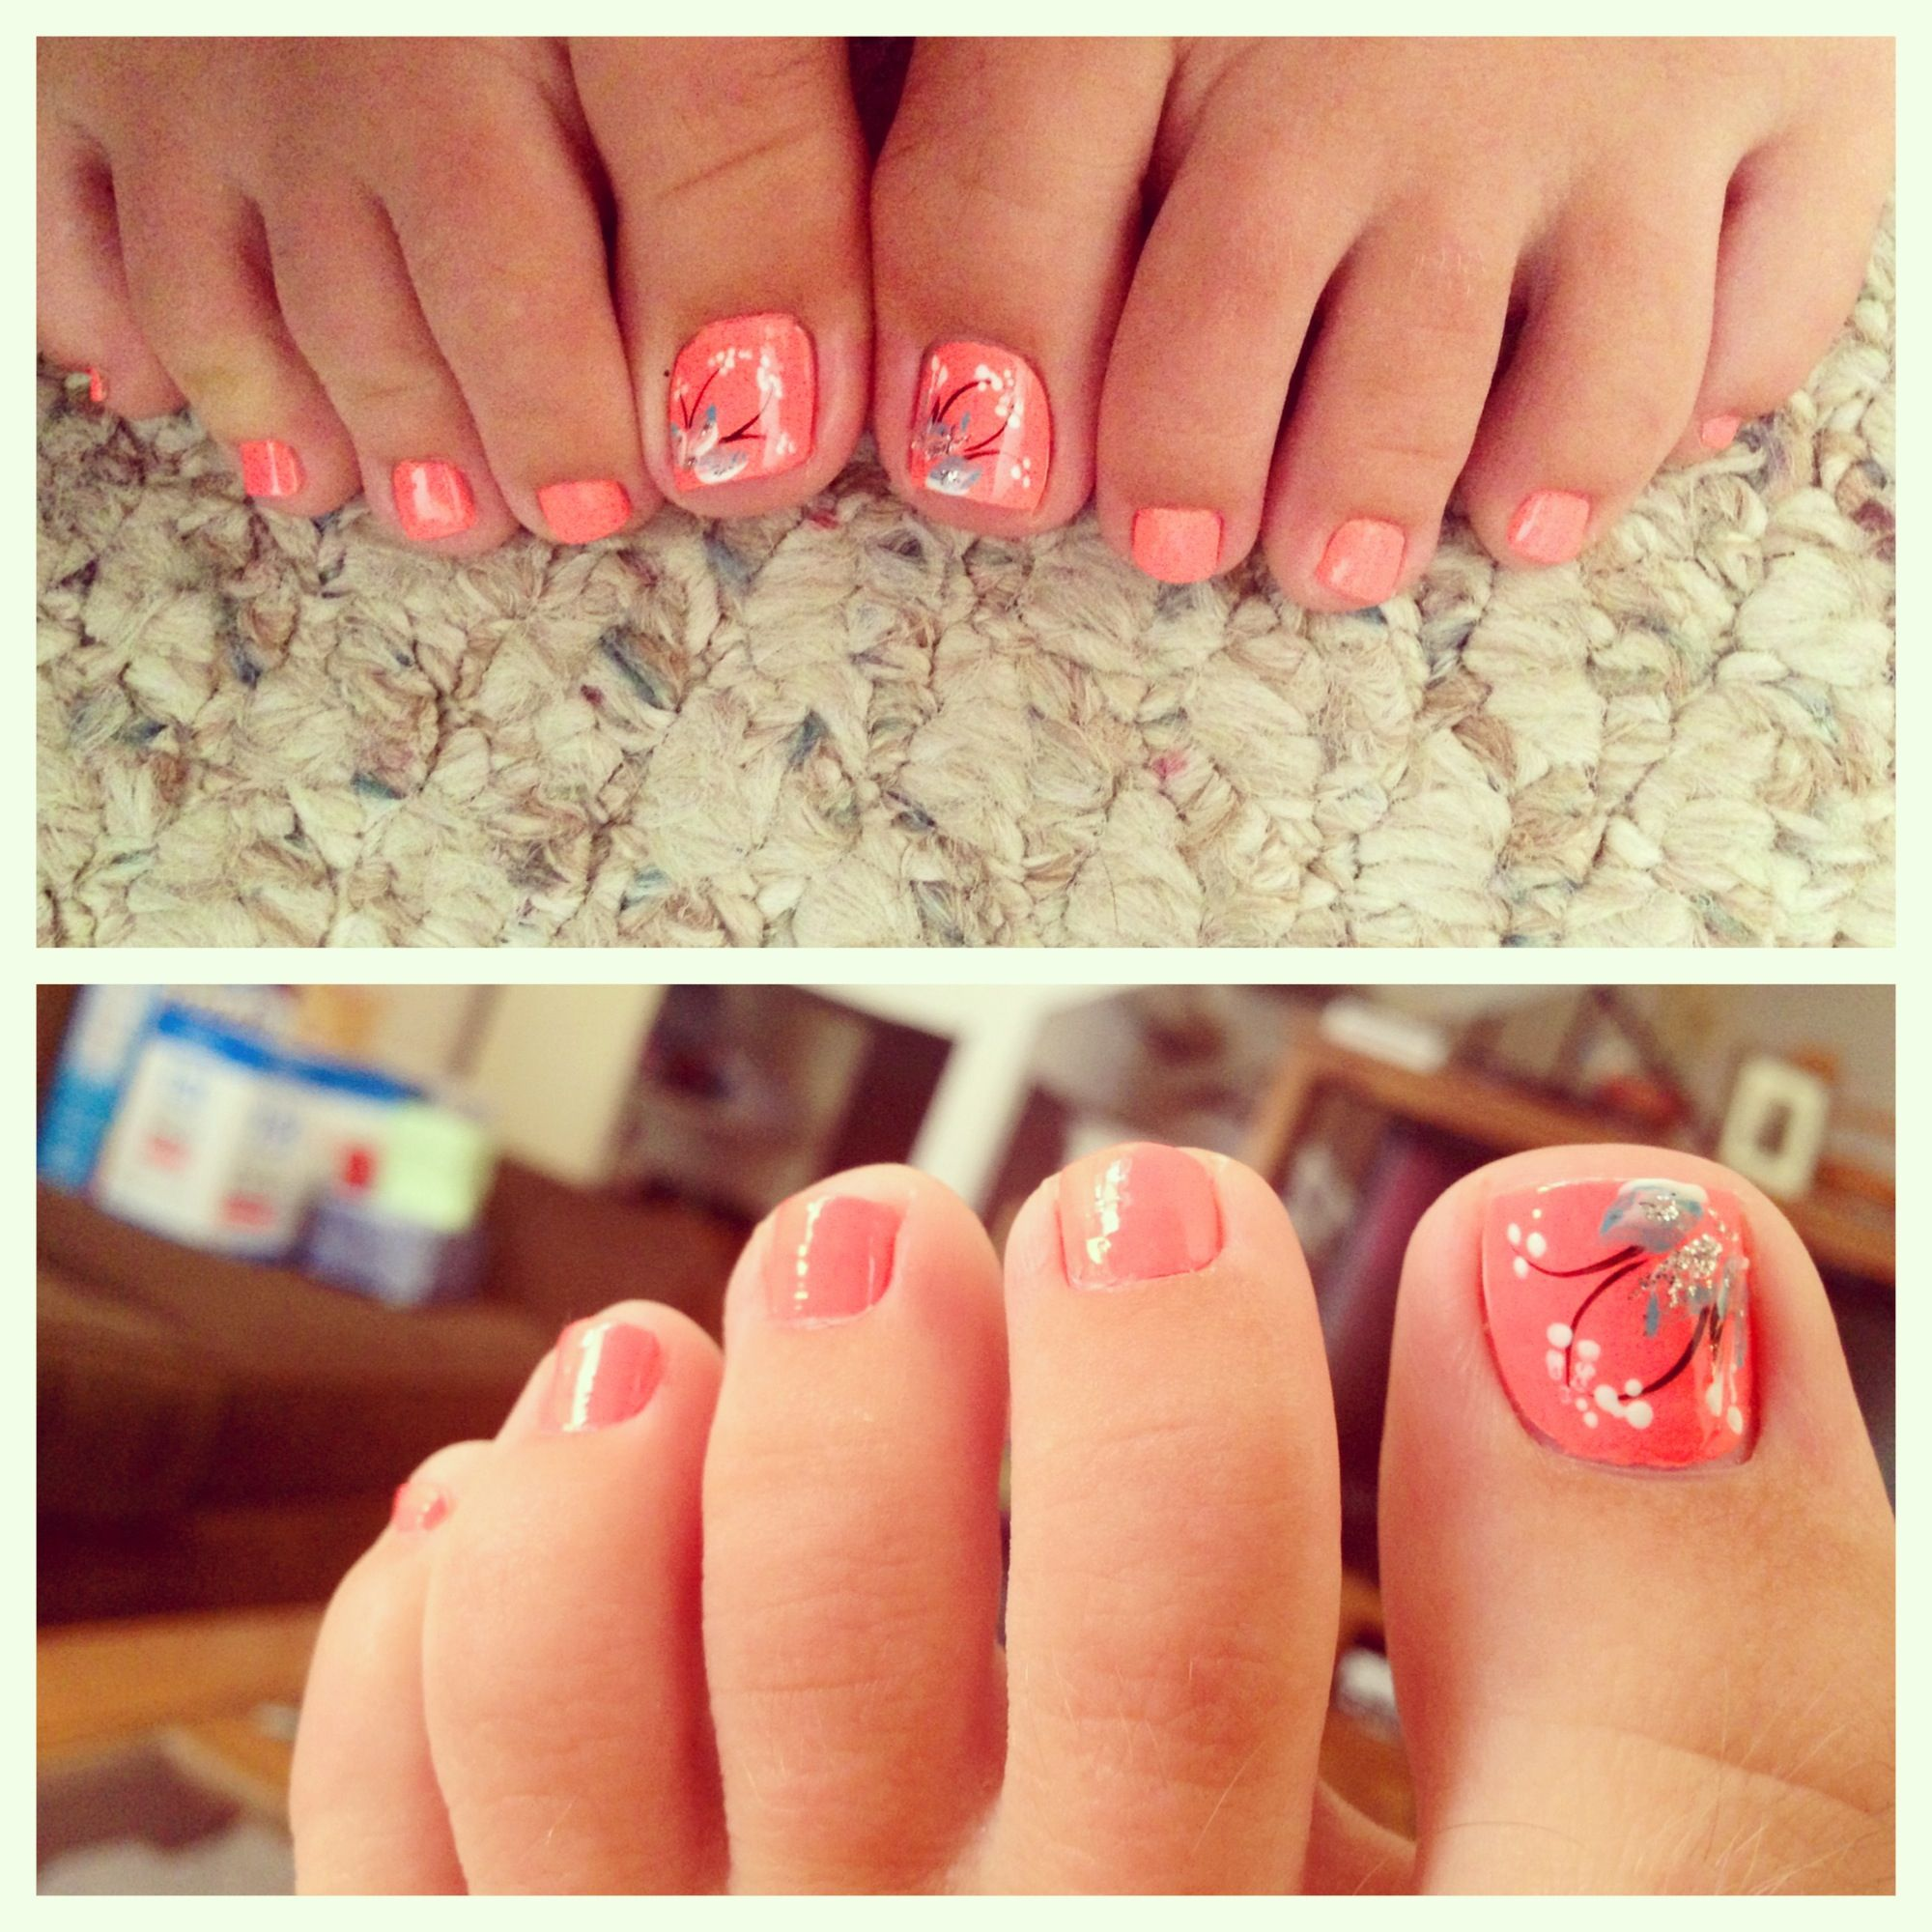 Coral Color Nail Designs: Coral Color Toe Nails With Flower Design. Cute Summertime